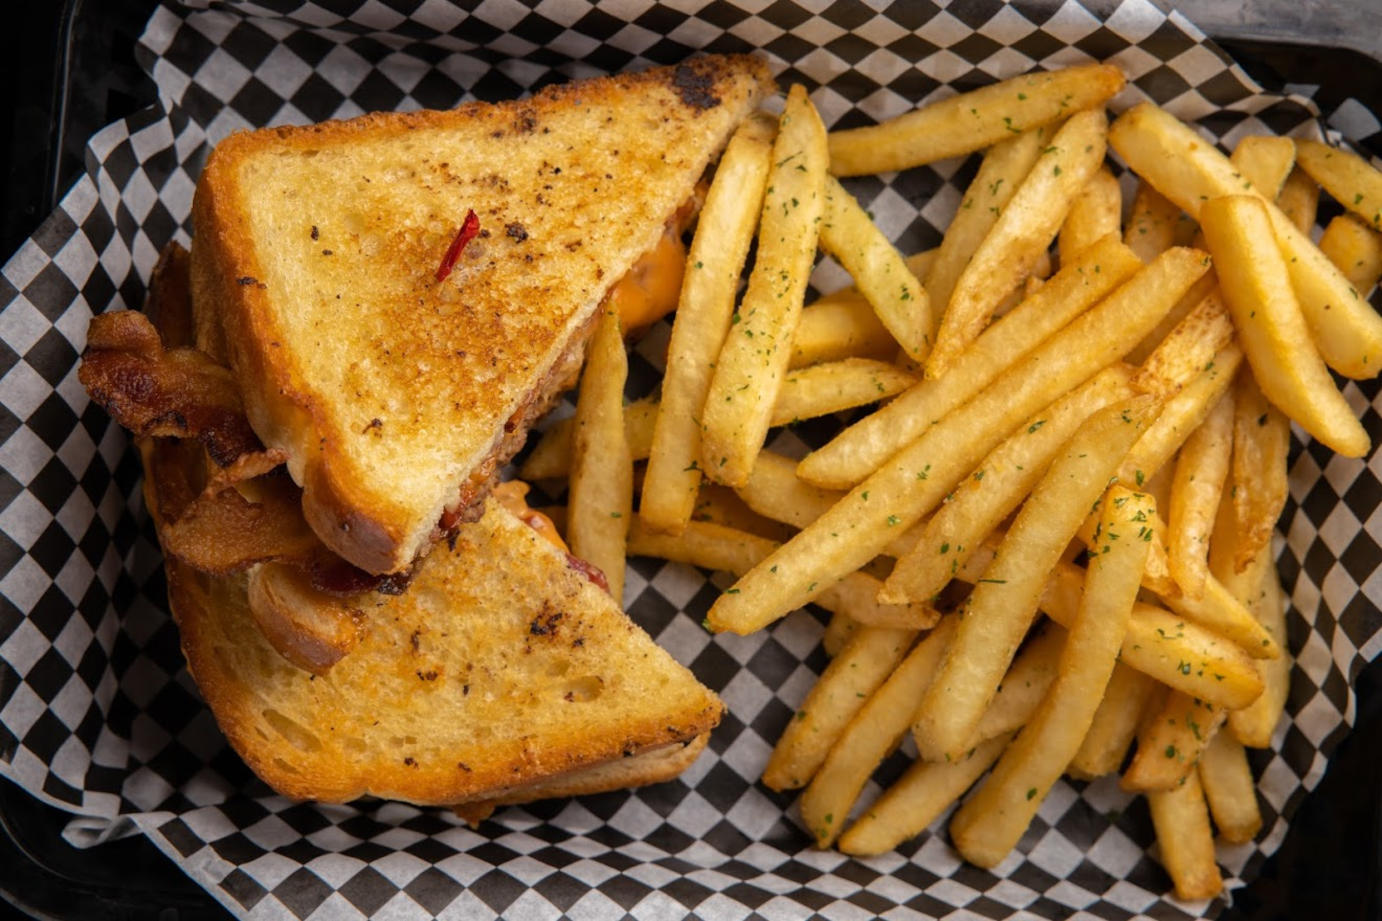 Grilled sandwich and fries